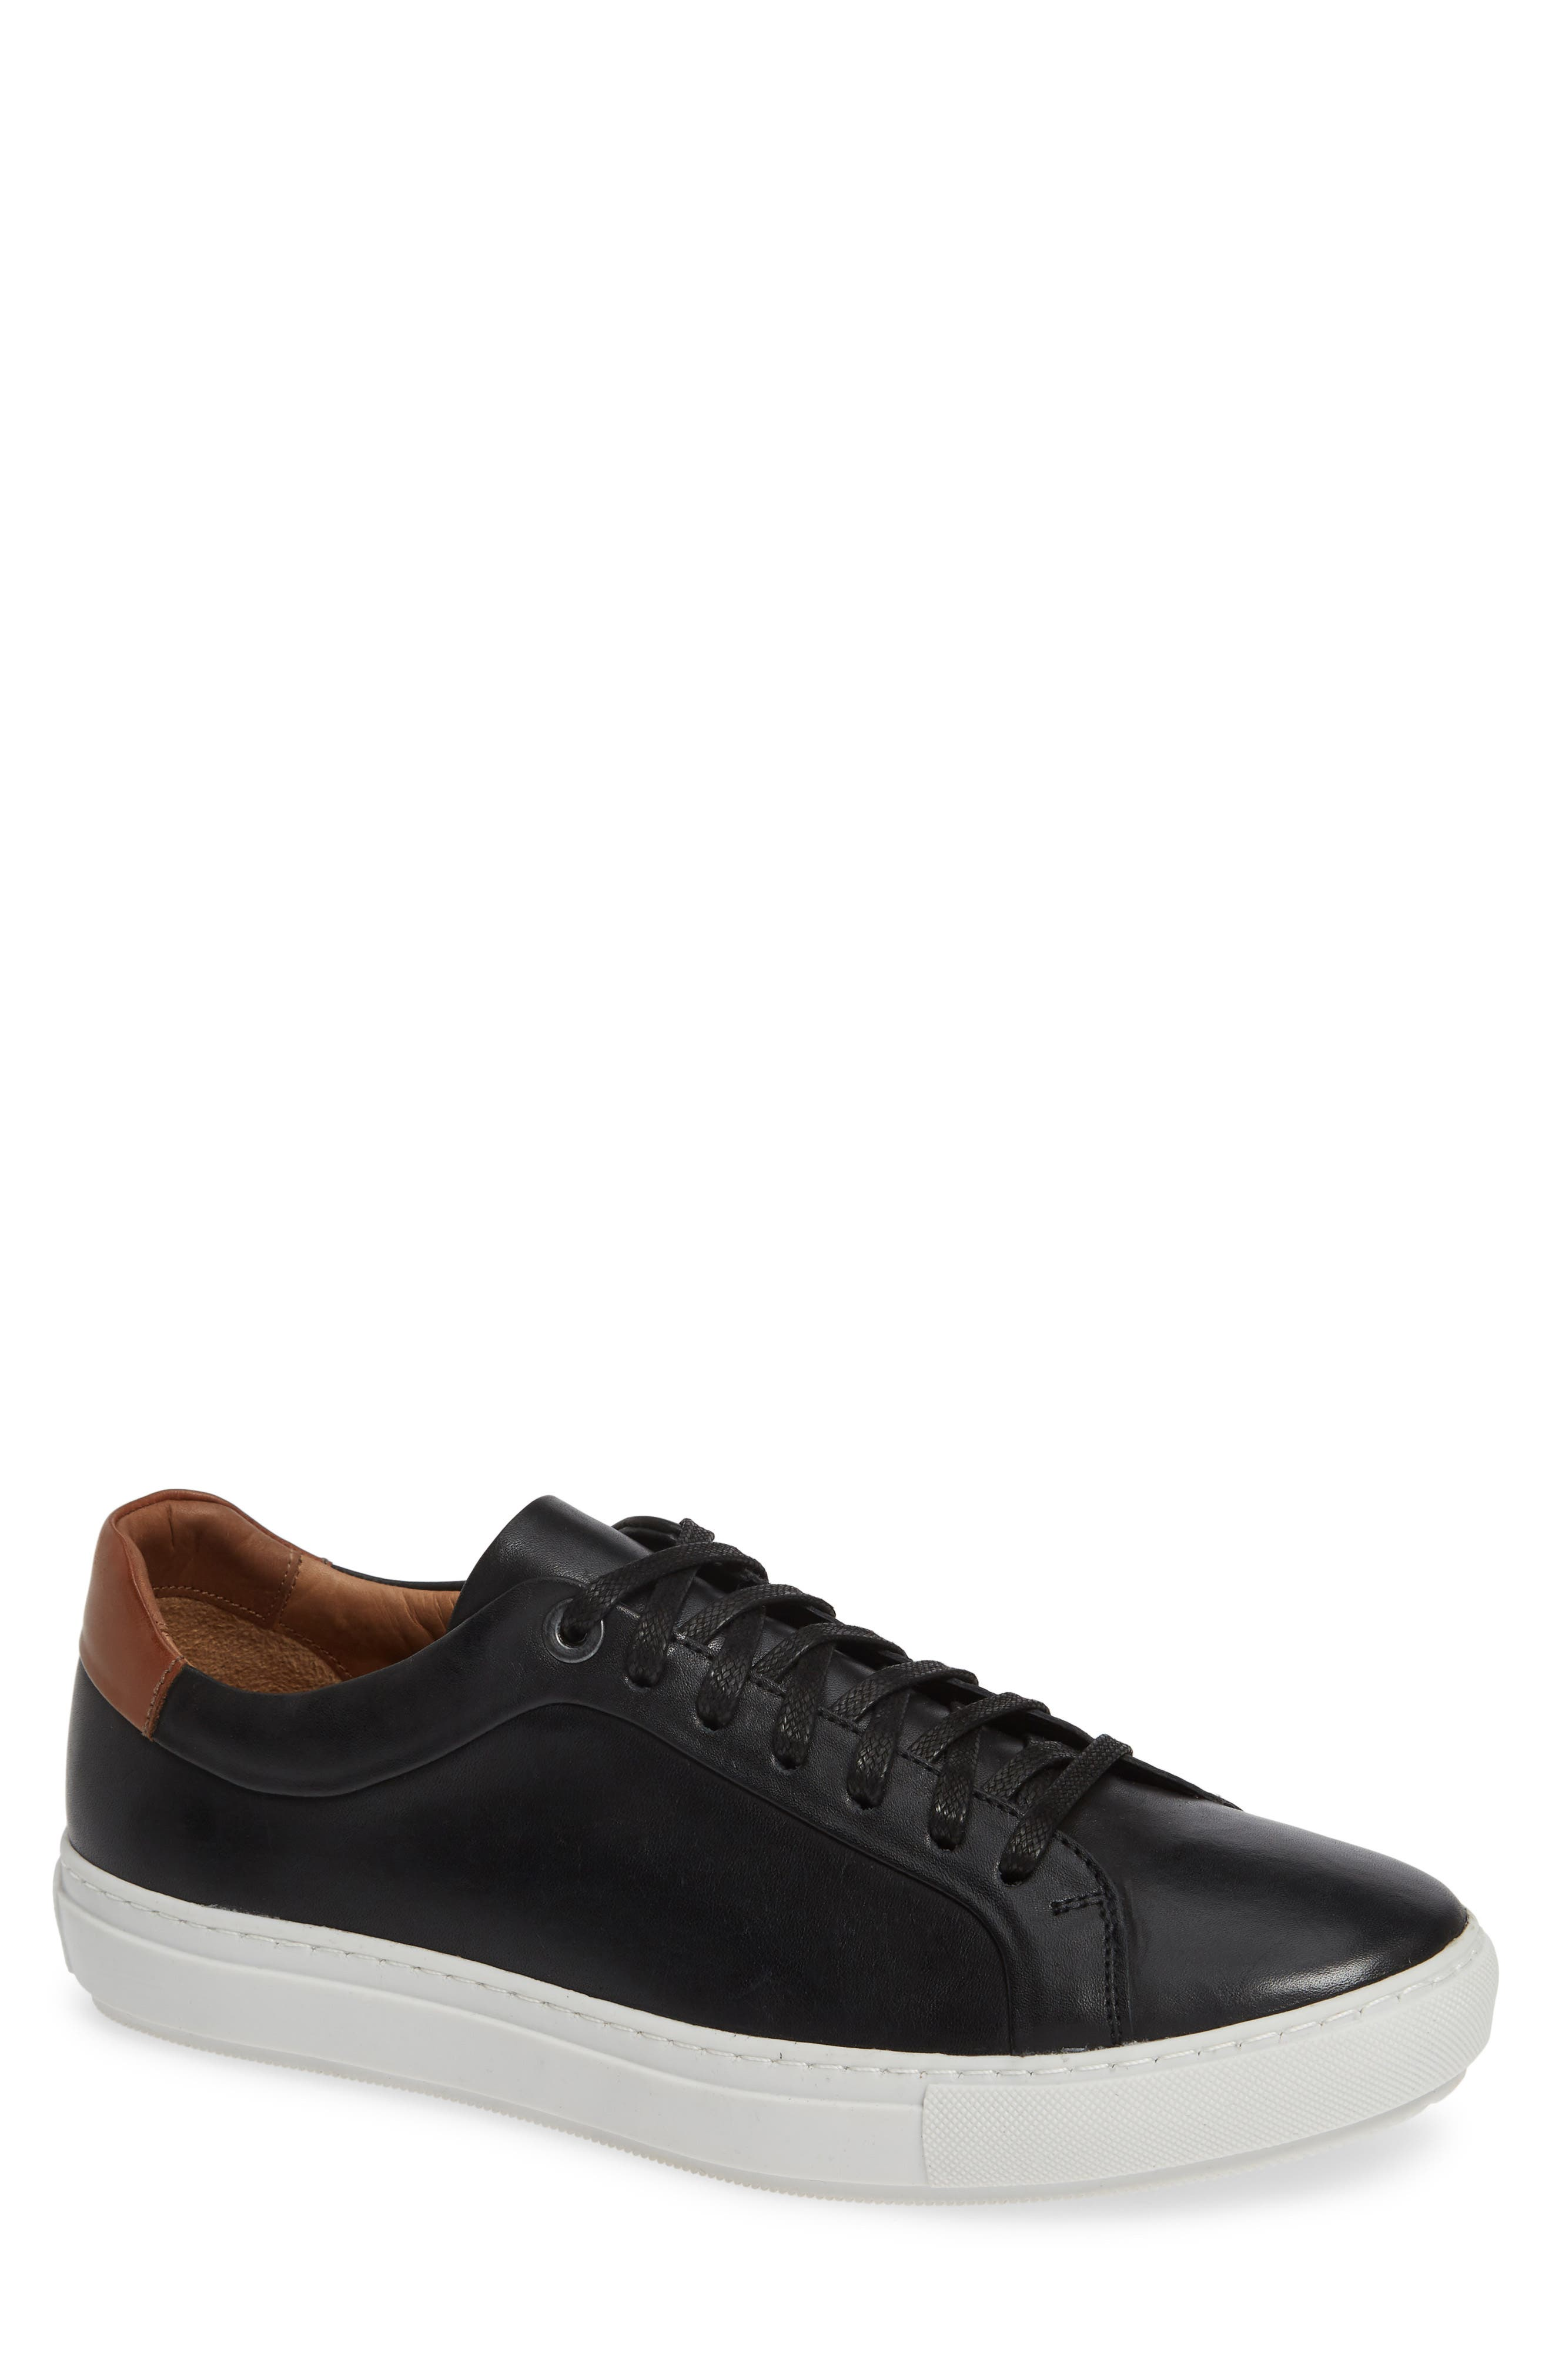 NORDSTROM MEN'S SHOP Zack Sneaker, Main, color, BLACK LEATHER